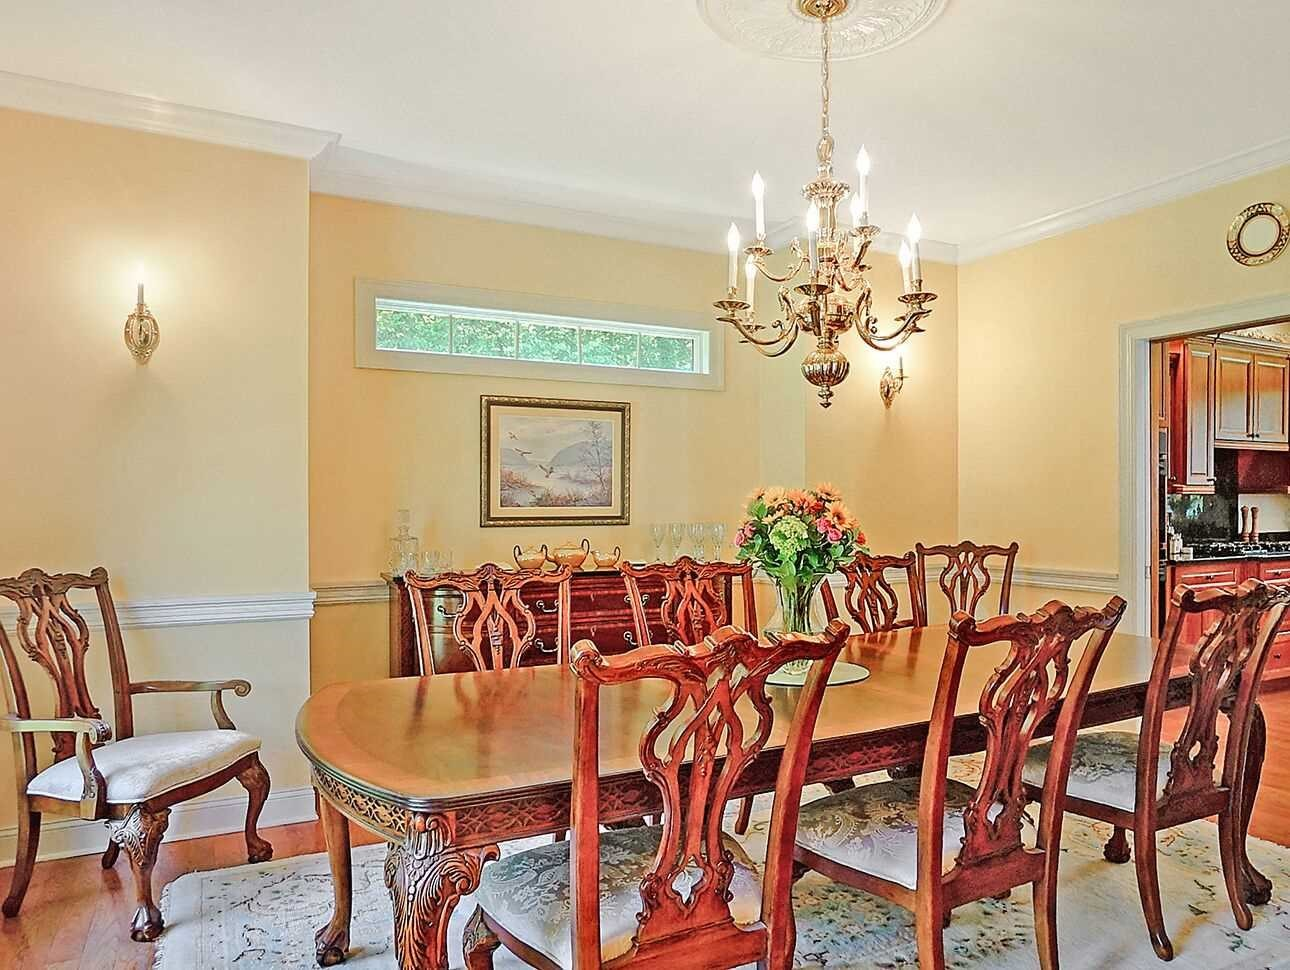 Additional photo for property listing at 59 BARRACO BLVD 59 BARRACO BLVD Rhinebeck, New York 12572 United States